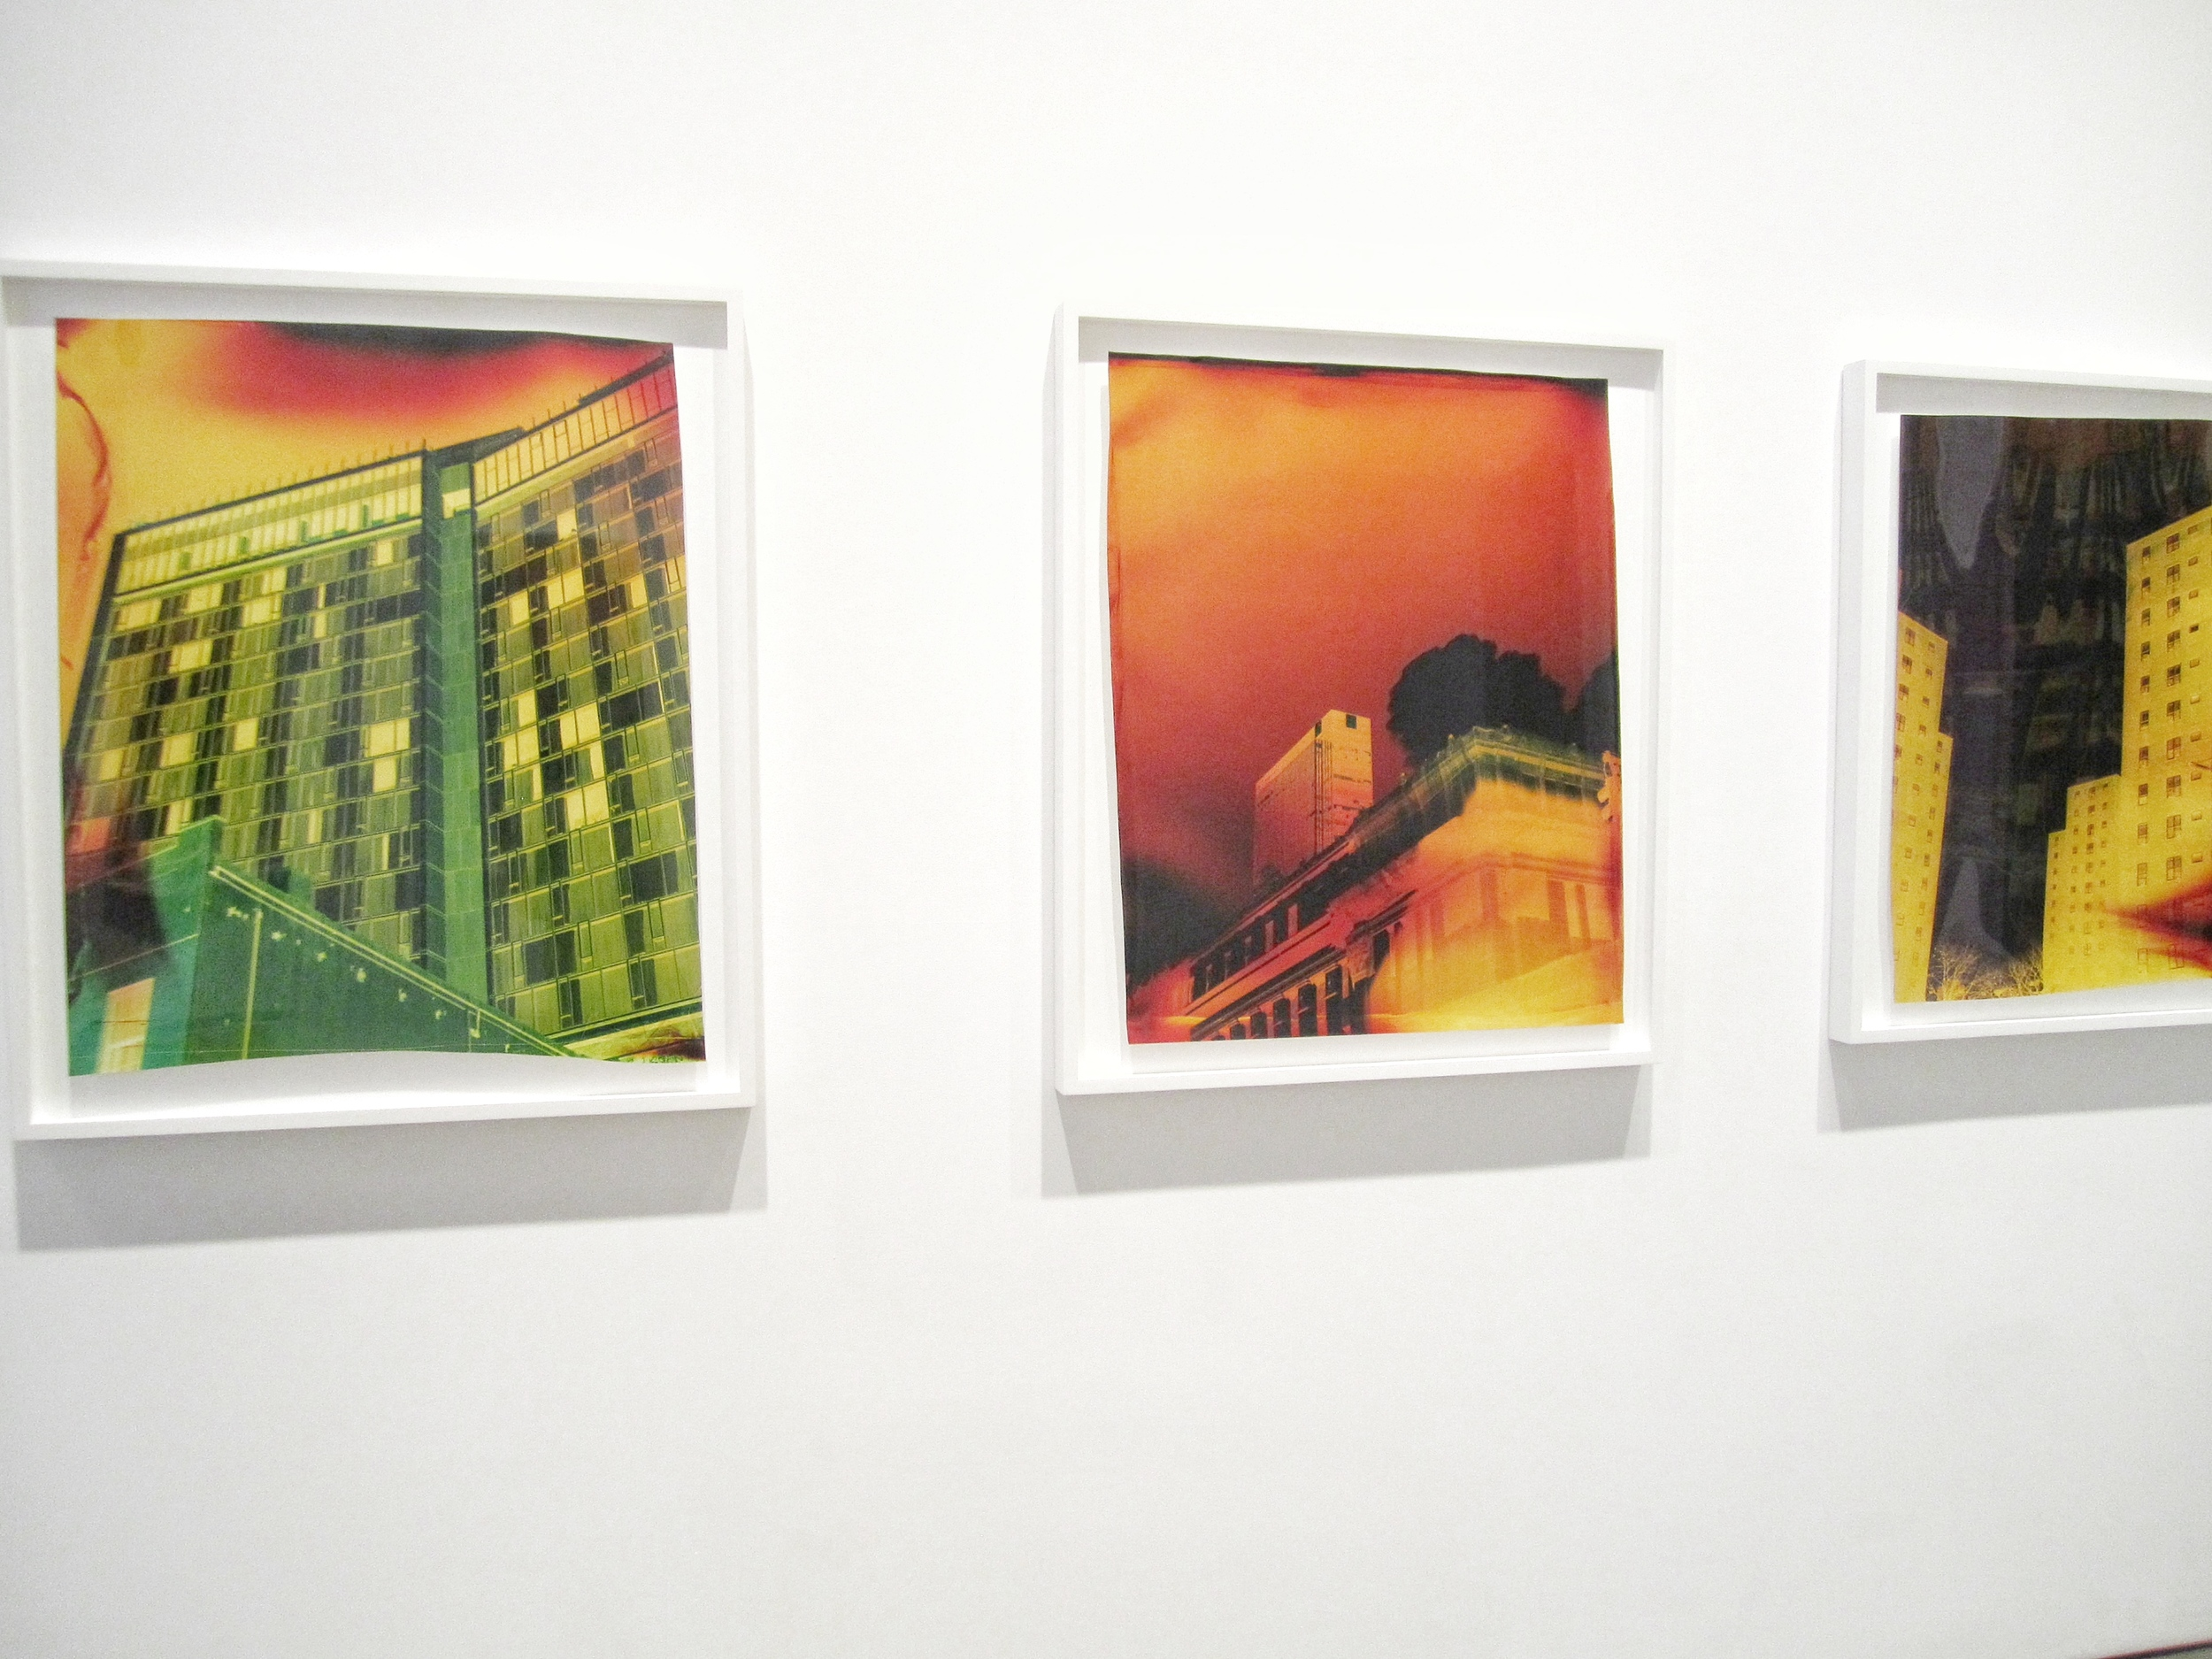 John Chiara, works from WEST SIDE AT TIORONDA exhibition,   Negative Chromogenic Photographs